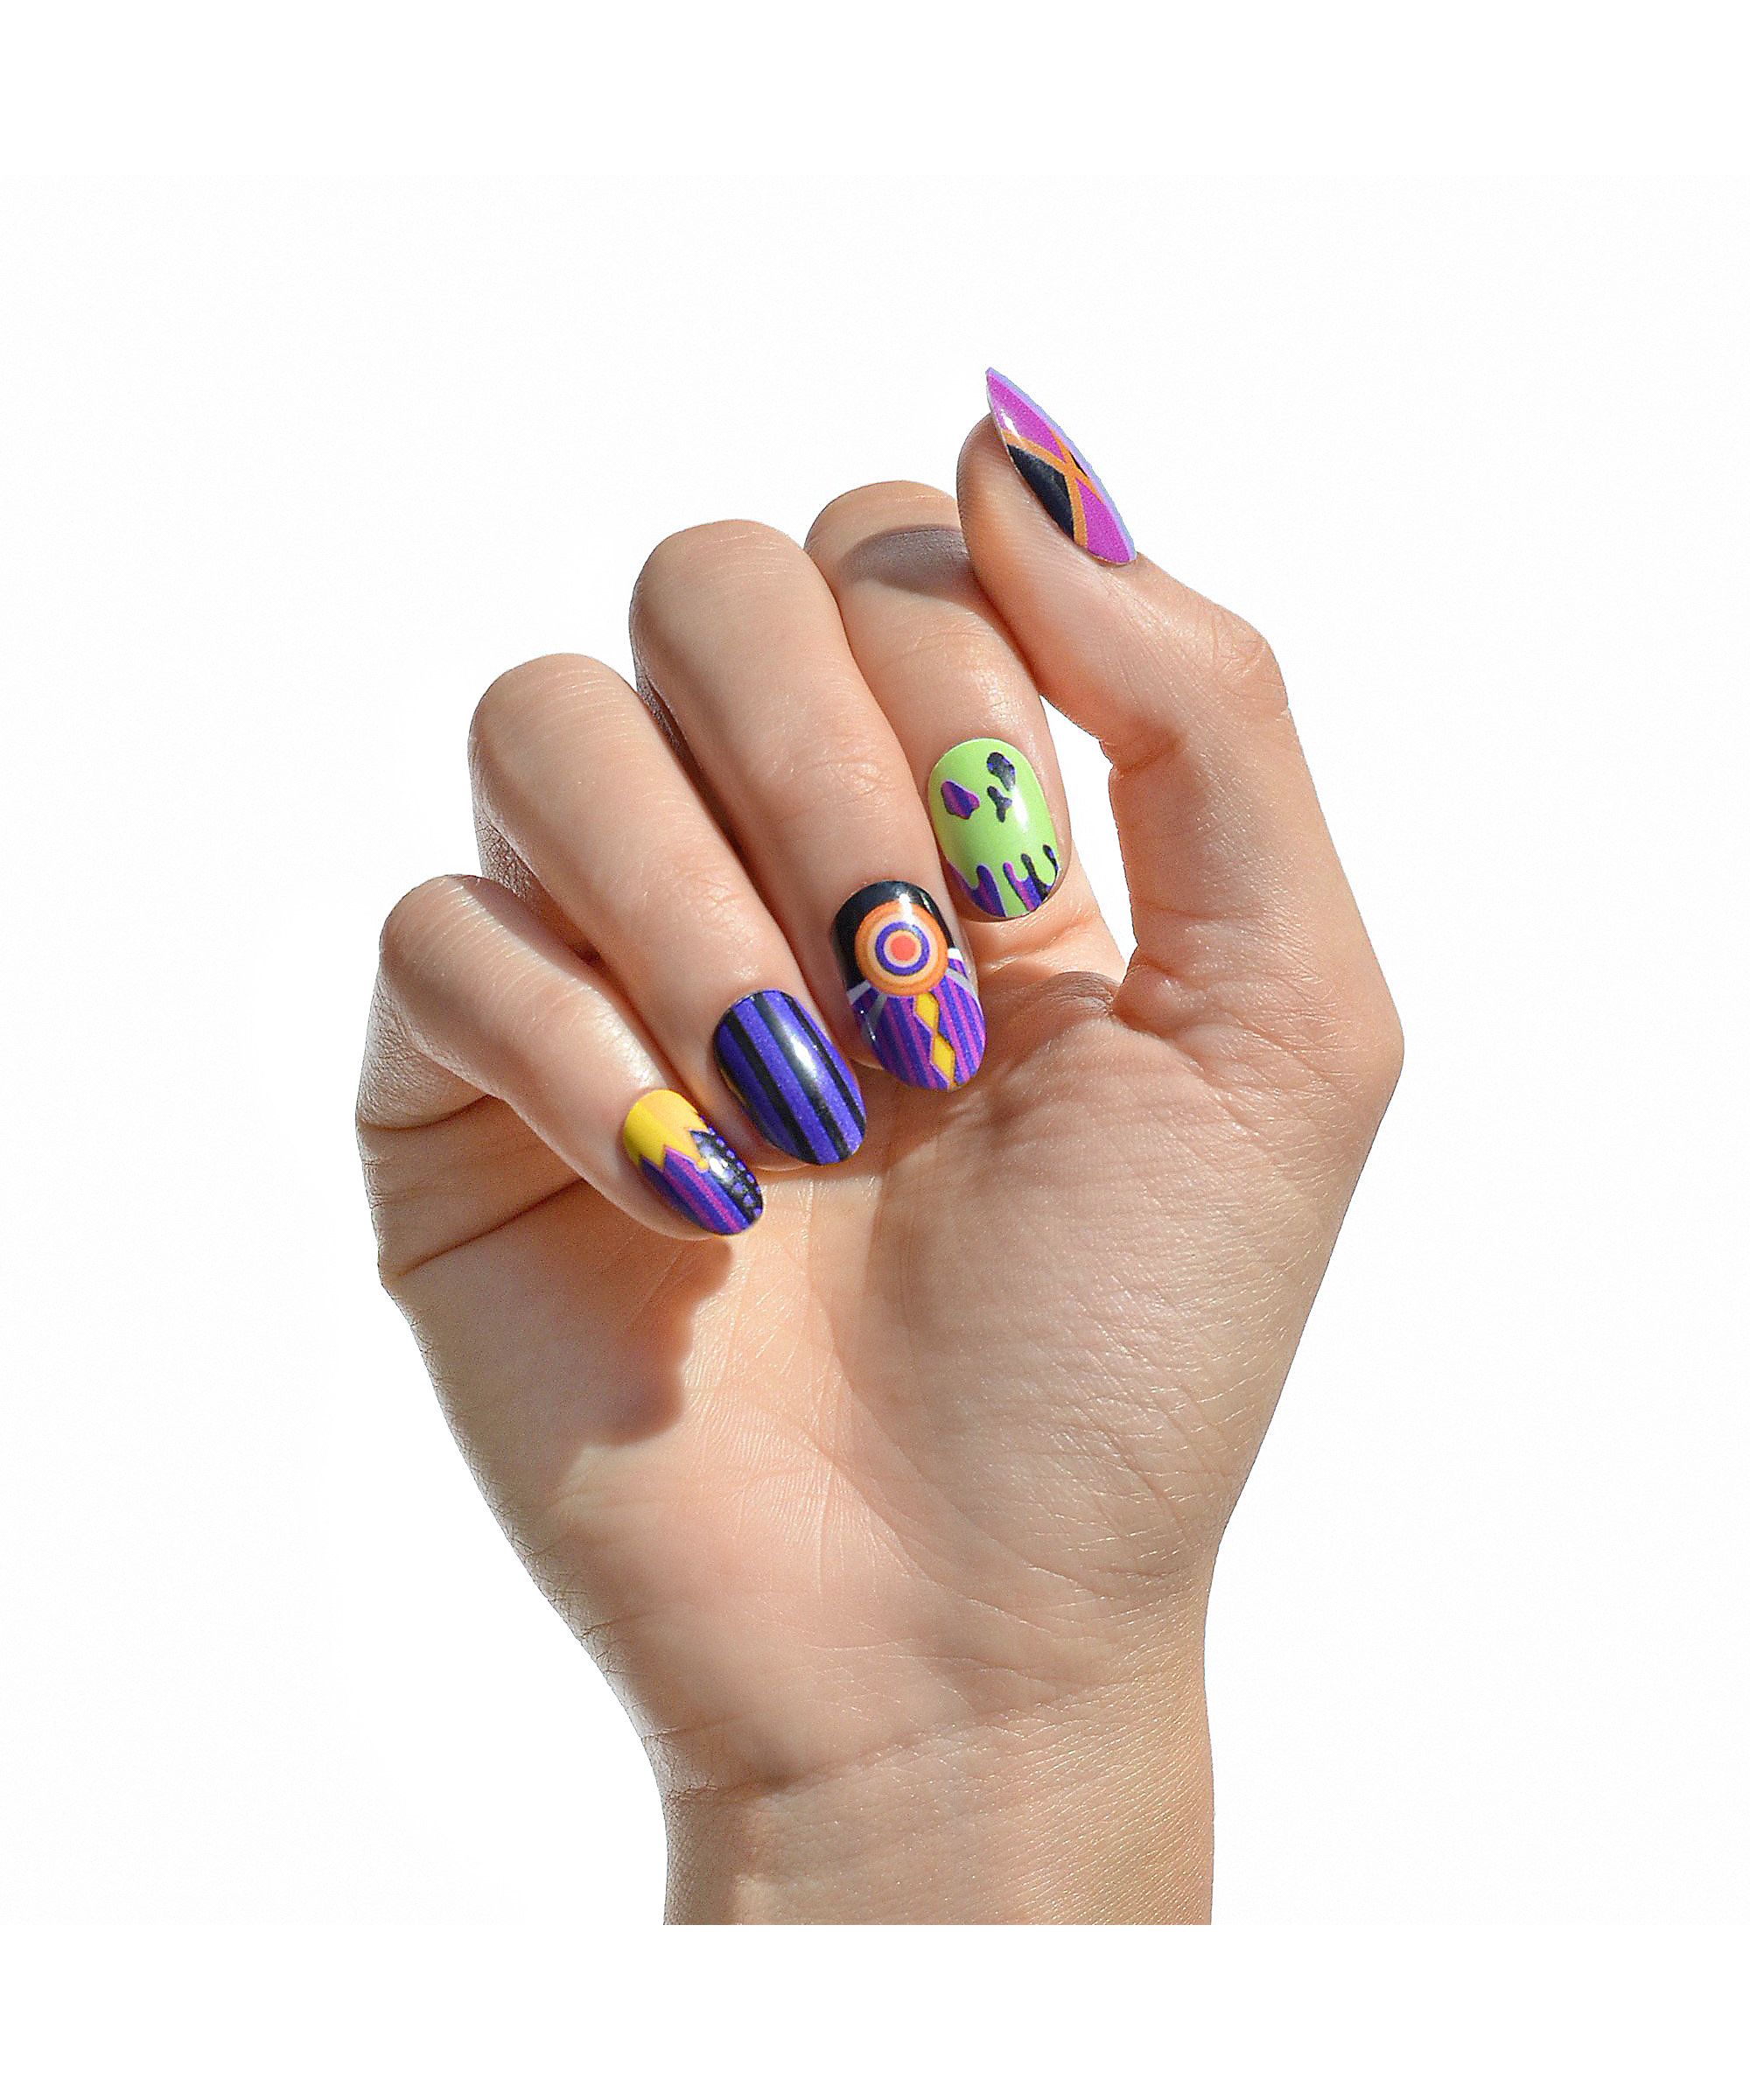 Refinery29 Uk On Instagram The 90s Called They Want Their Nail Art Back Minimalist Nails Fall Manicure Perfect Nails